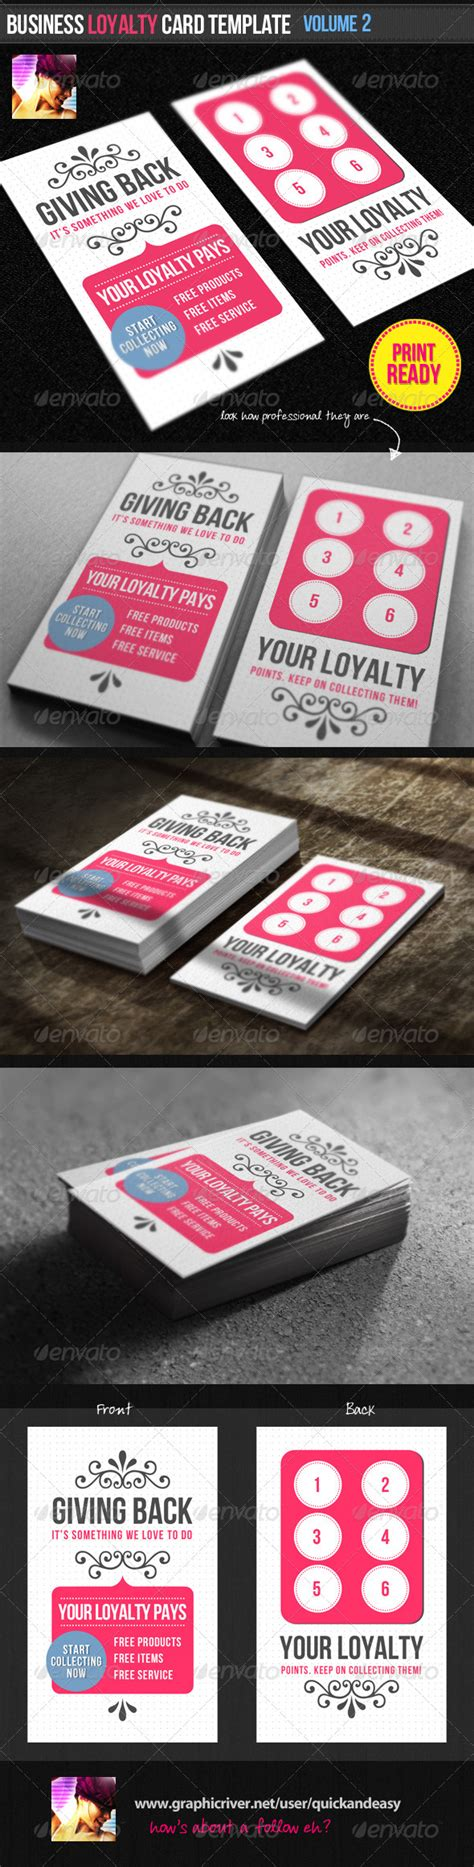 loyalty business cards templates business loyalty card template vol 2 by quickandeasy